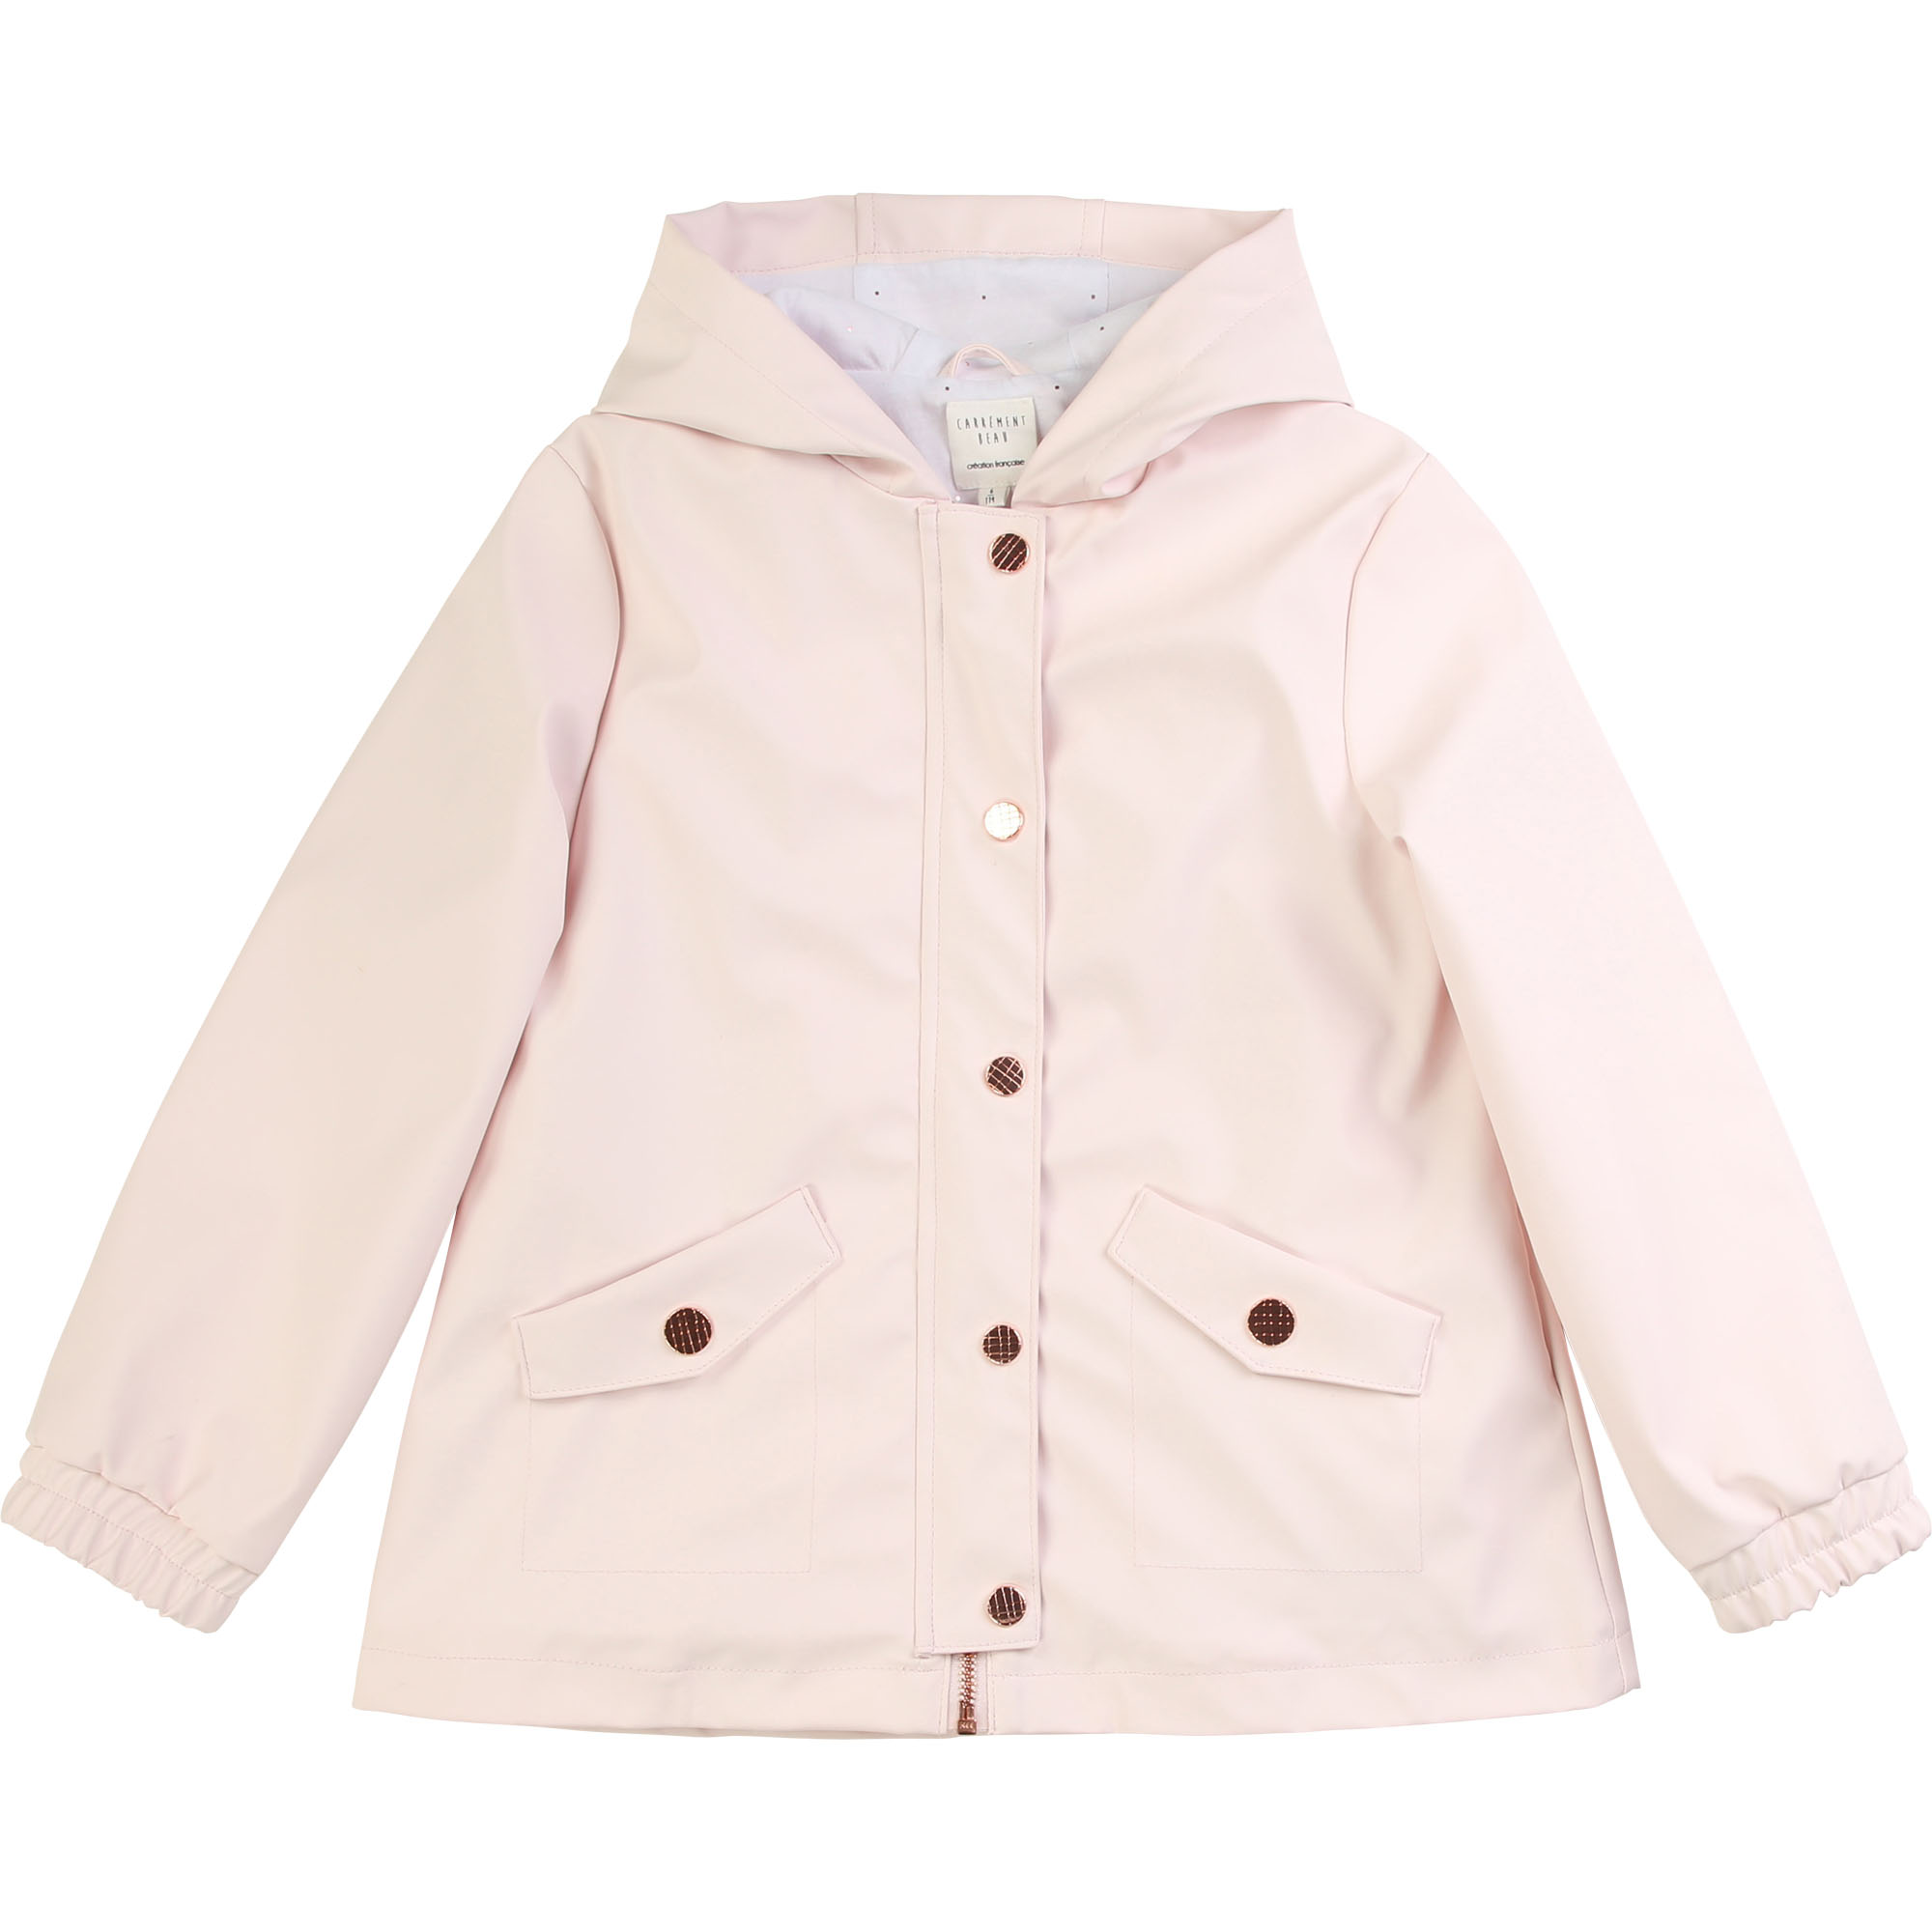 Waterproof hooded raincoat CARREMENT BEAU for GIRL